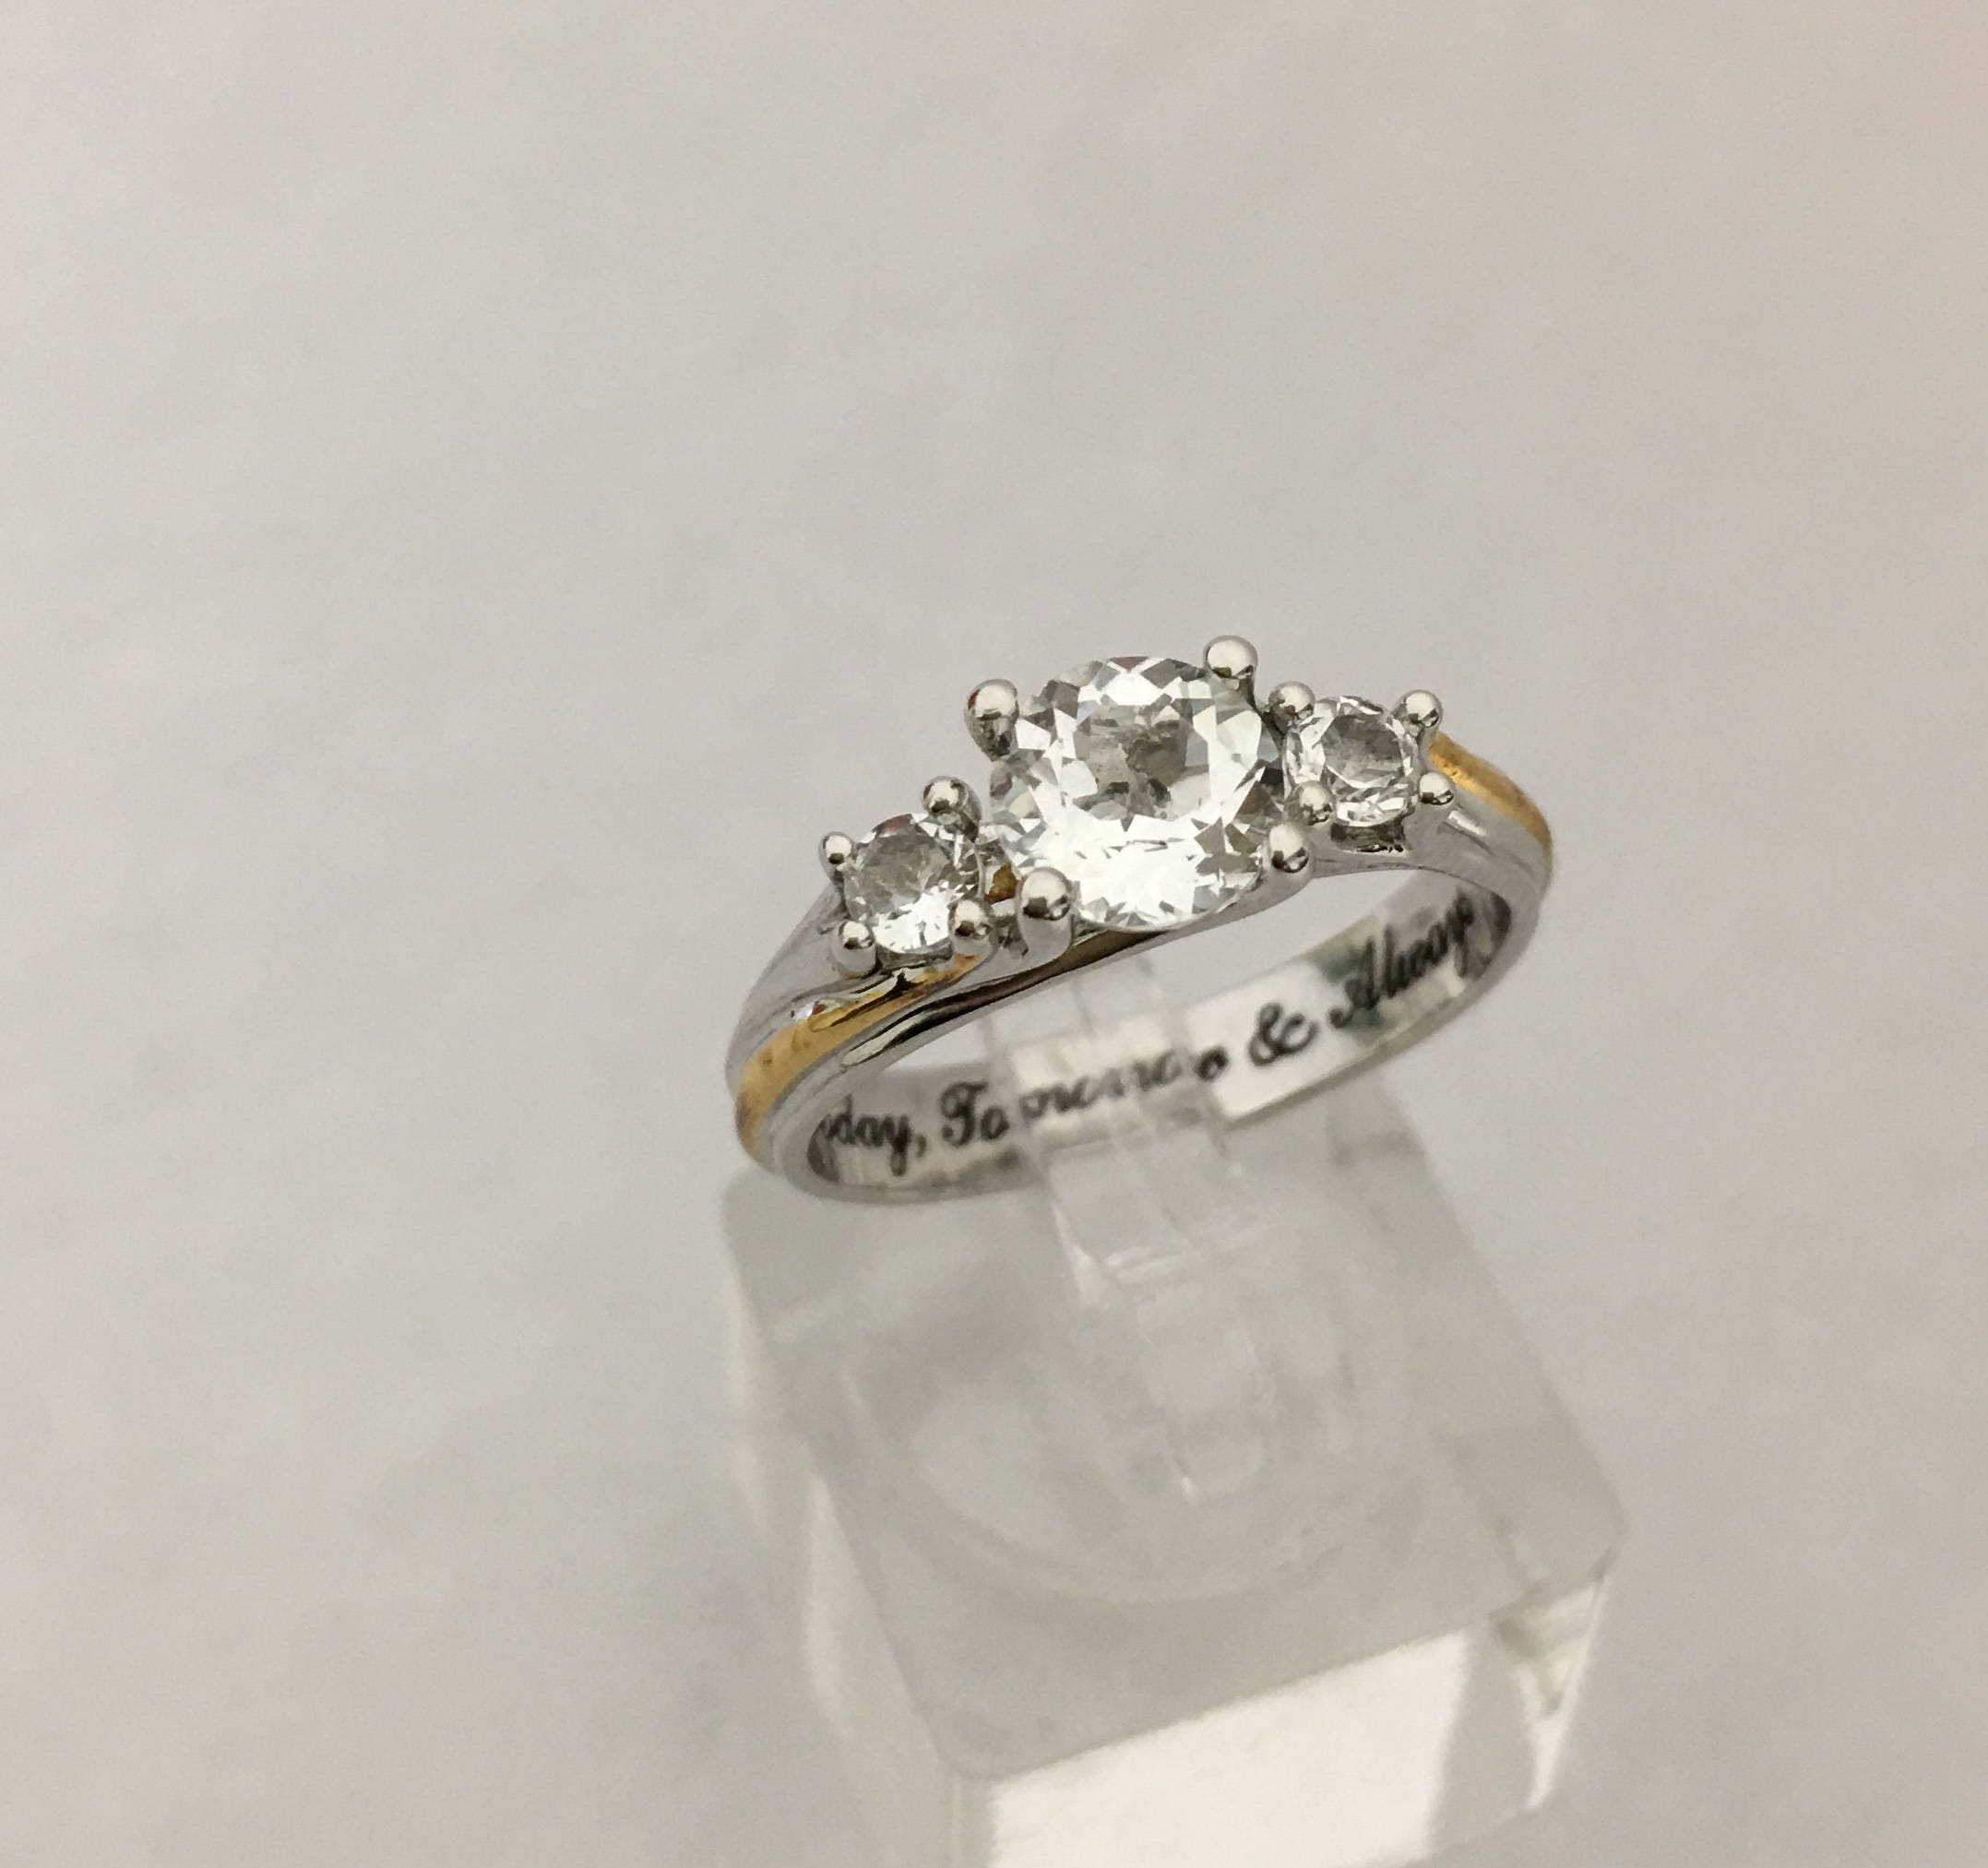 diamond vs g art gold ctw h white rings shape setting marquise in k abalone caymancode engagement deco